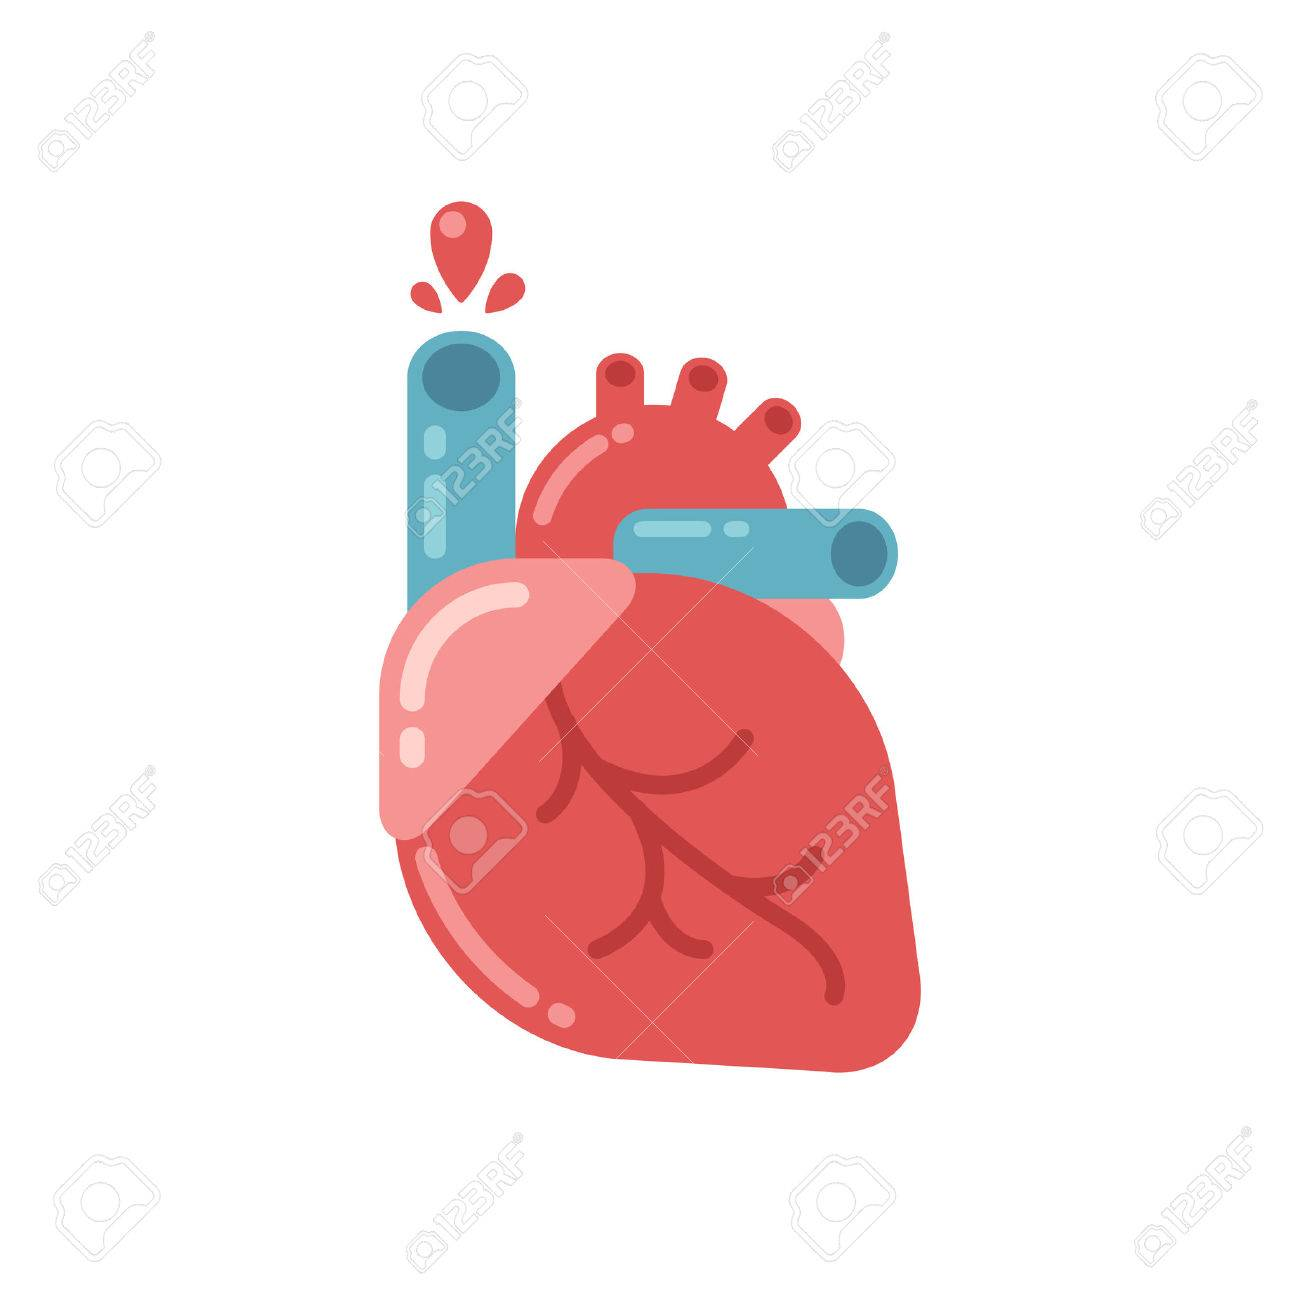 stylized human heart anatomy icon modern flat cartoon style rh 123rf com human heart vector free human heart vector sketch